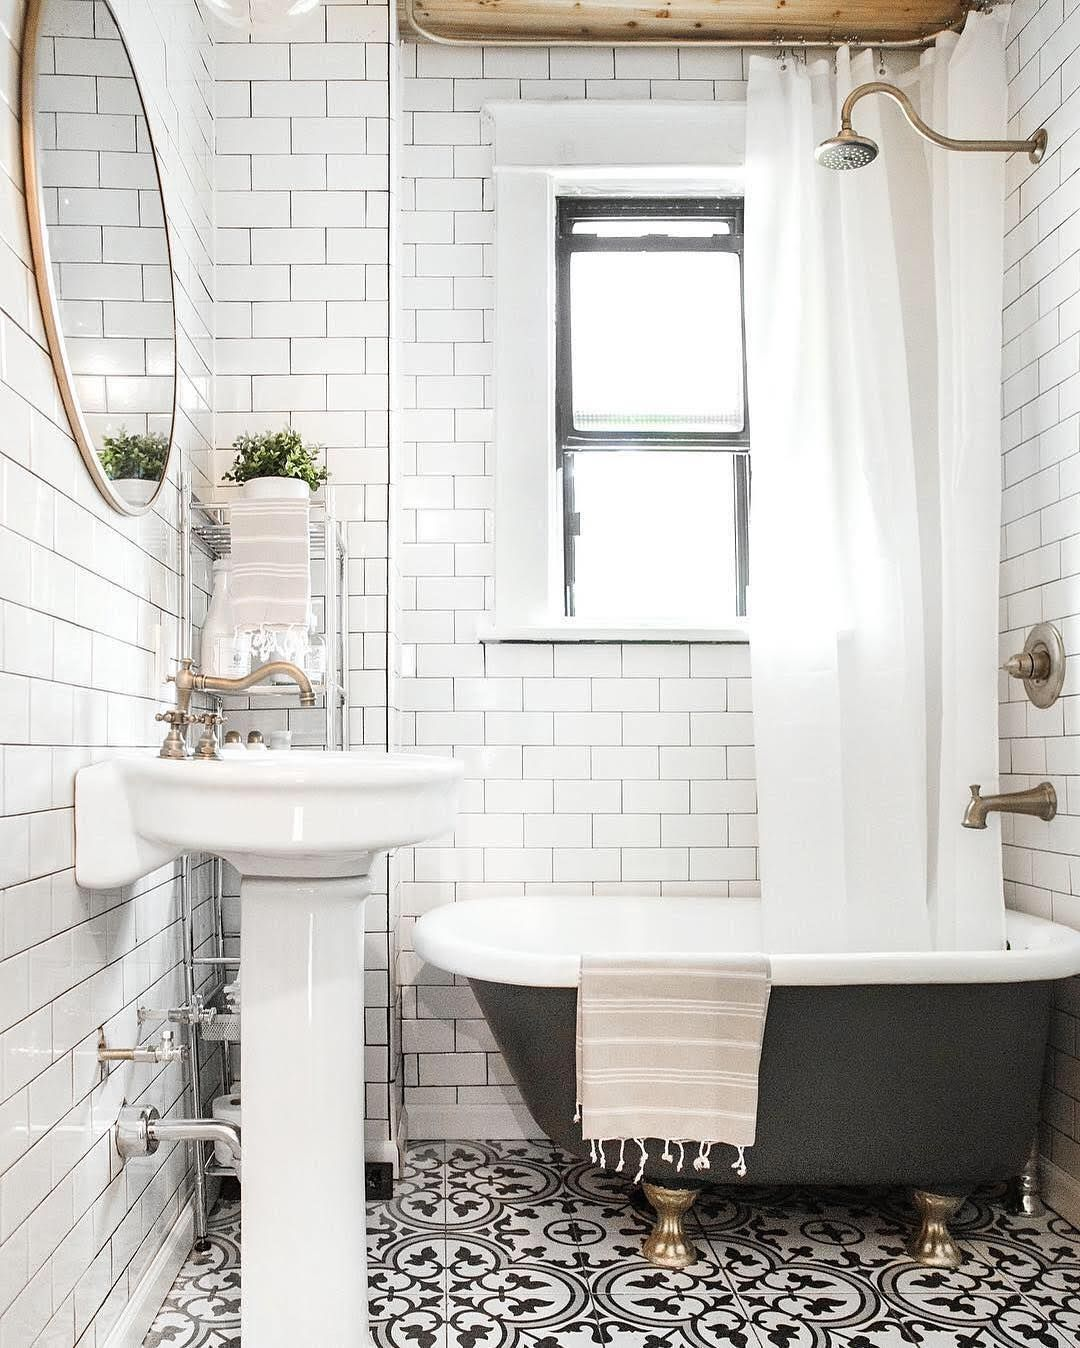 Small But Beautiful Bathrooms Of See This Instagram Photo By Airbnb Likes My